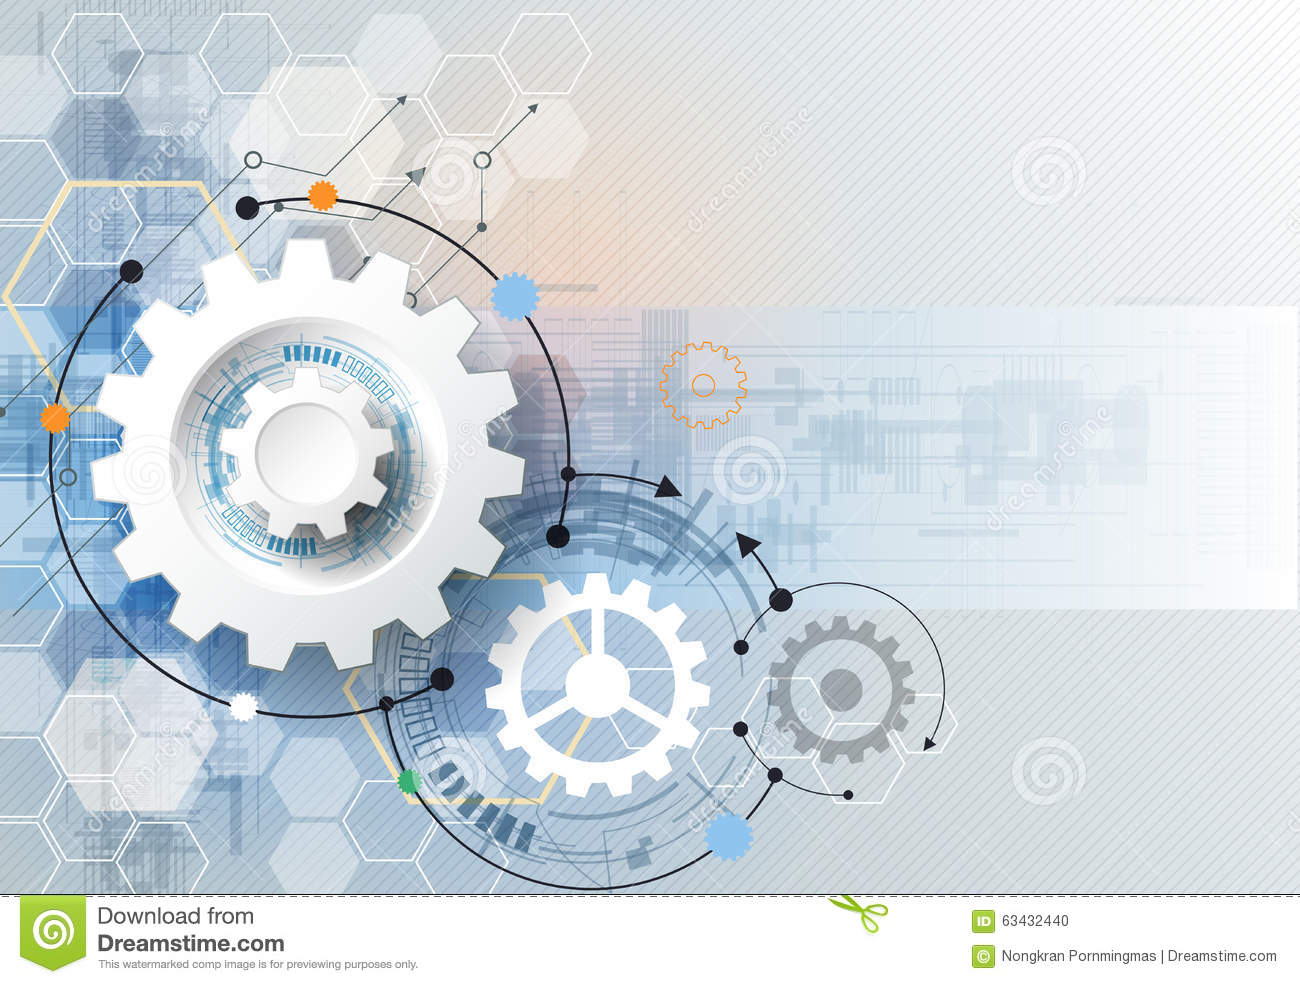 Download Vector Illustration Gear Wheel, Hexagons And Circuit Board, Hi-tech Digital Technology And Engineering Stock Vector - Illustration of concept, business: 63432440